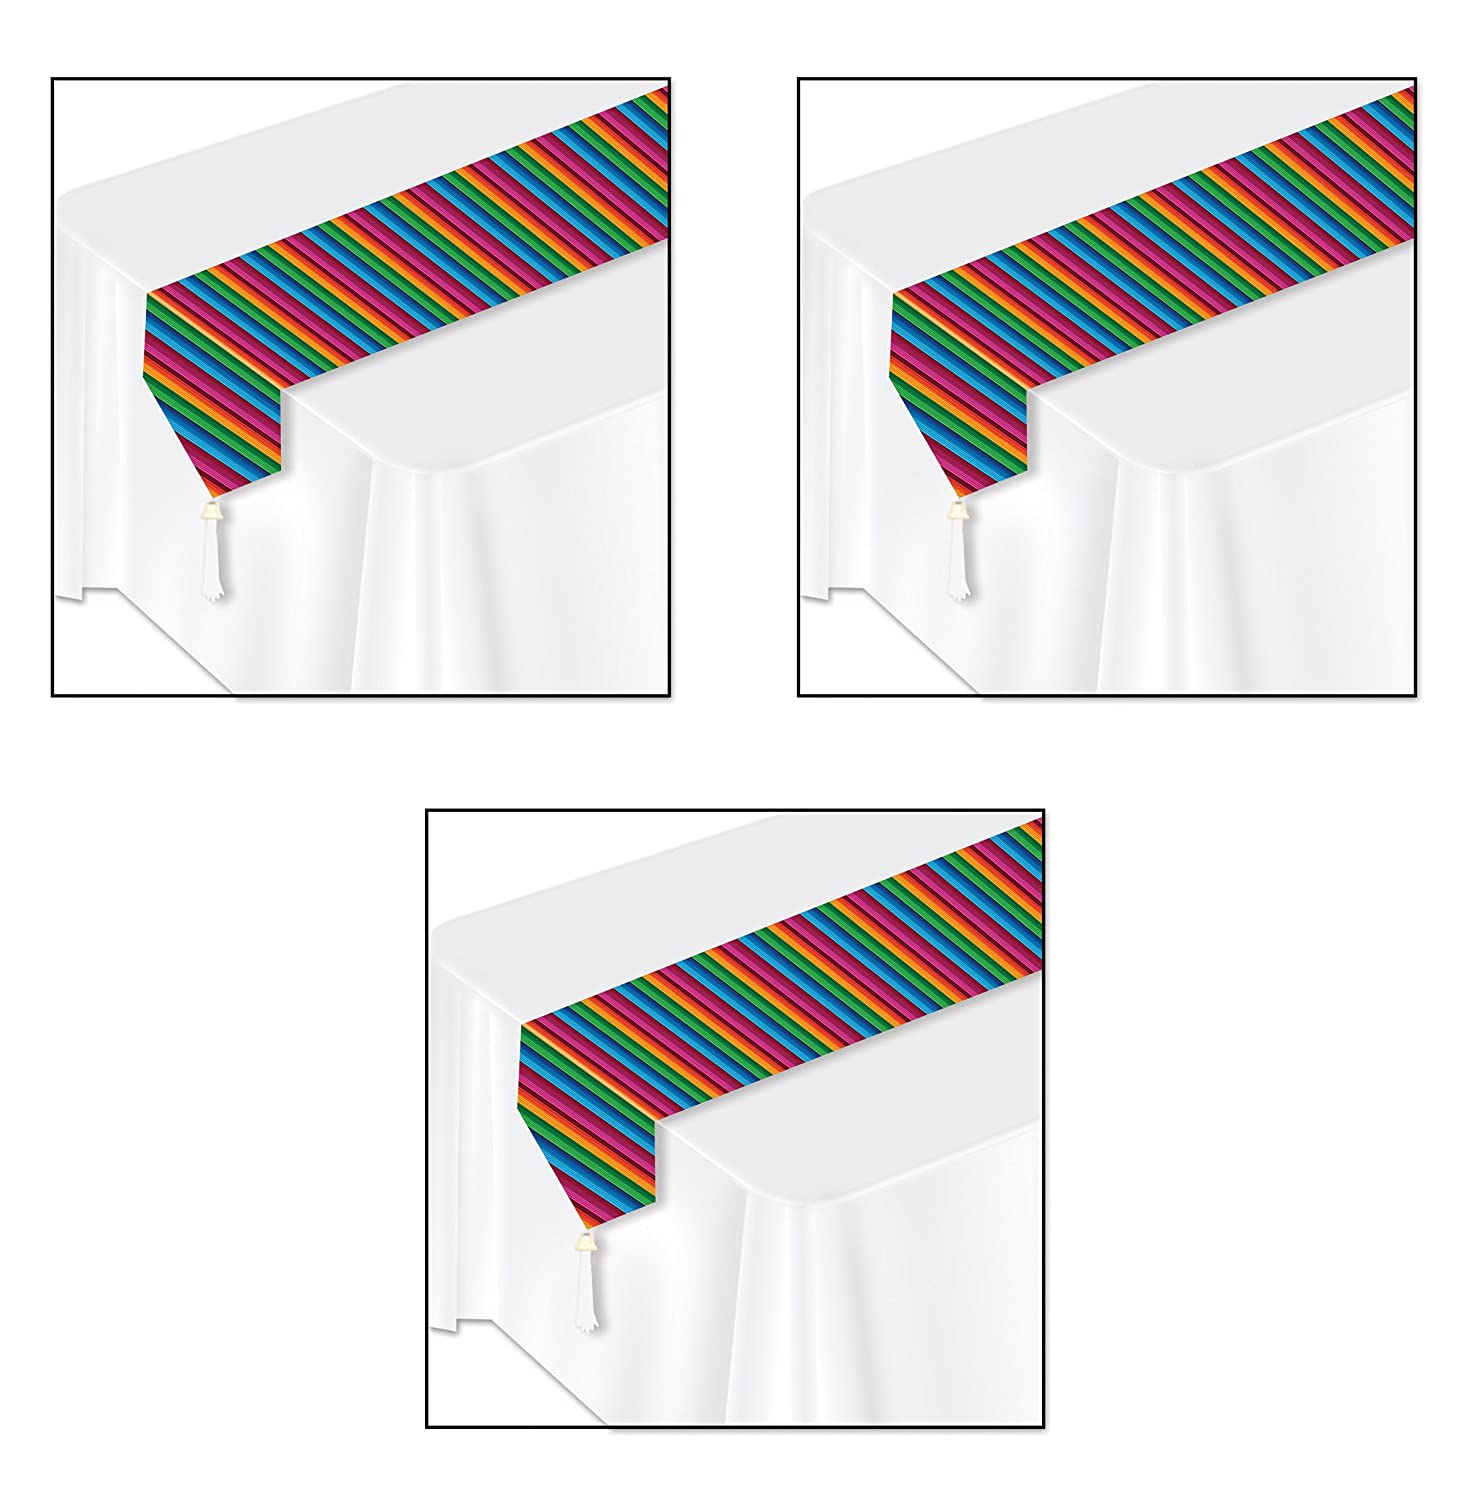 Beistle Printed Fiesta Table Runner The Beistle Company 50921